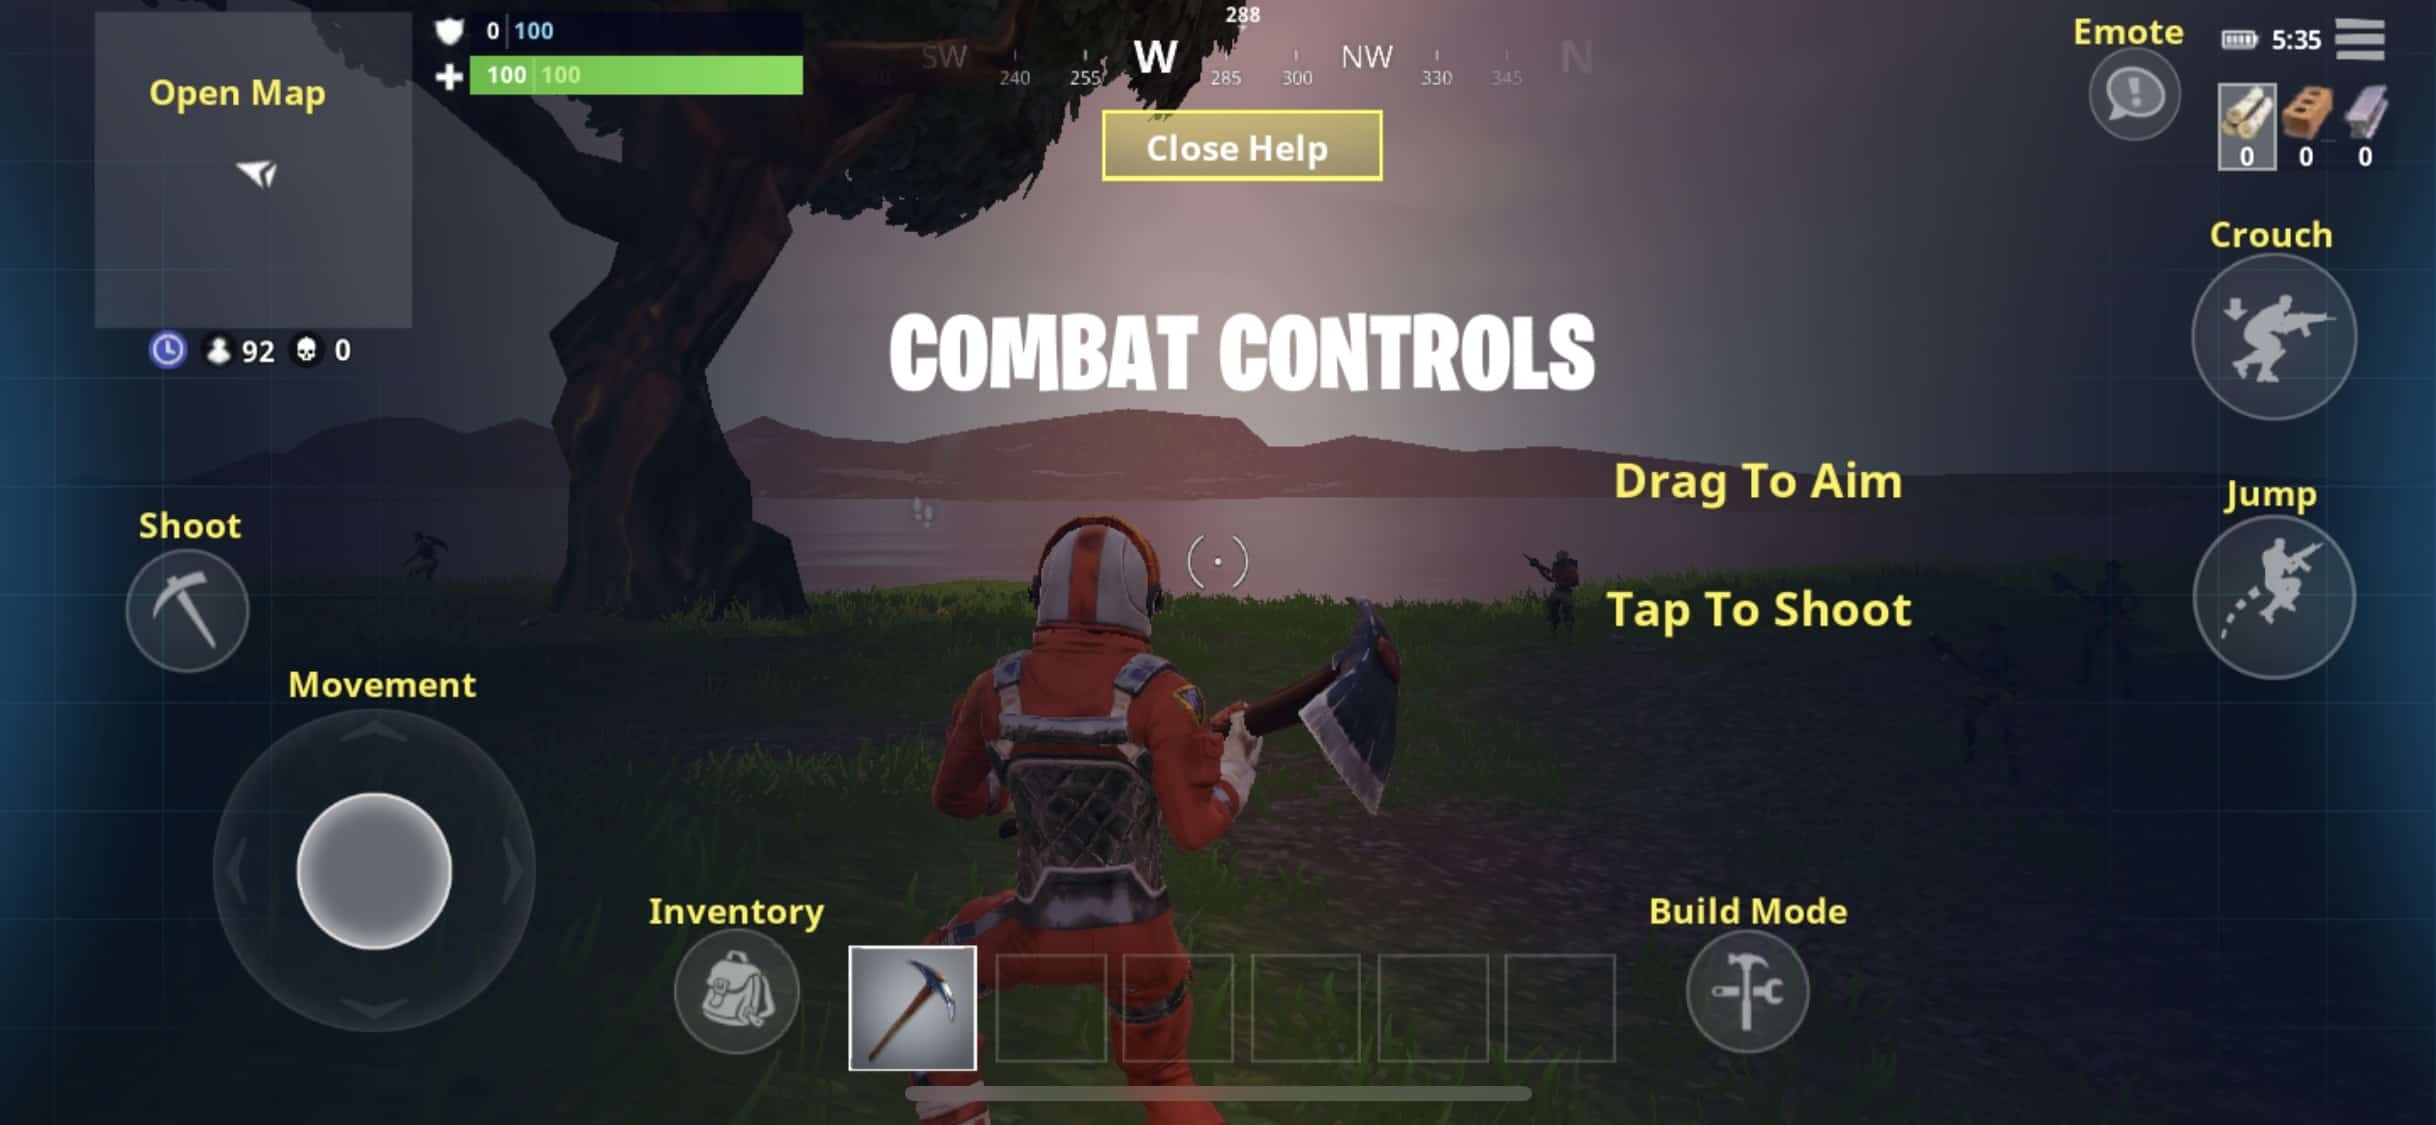 Fortnite iPhone controls